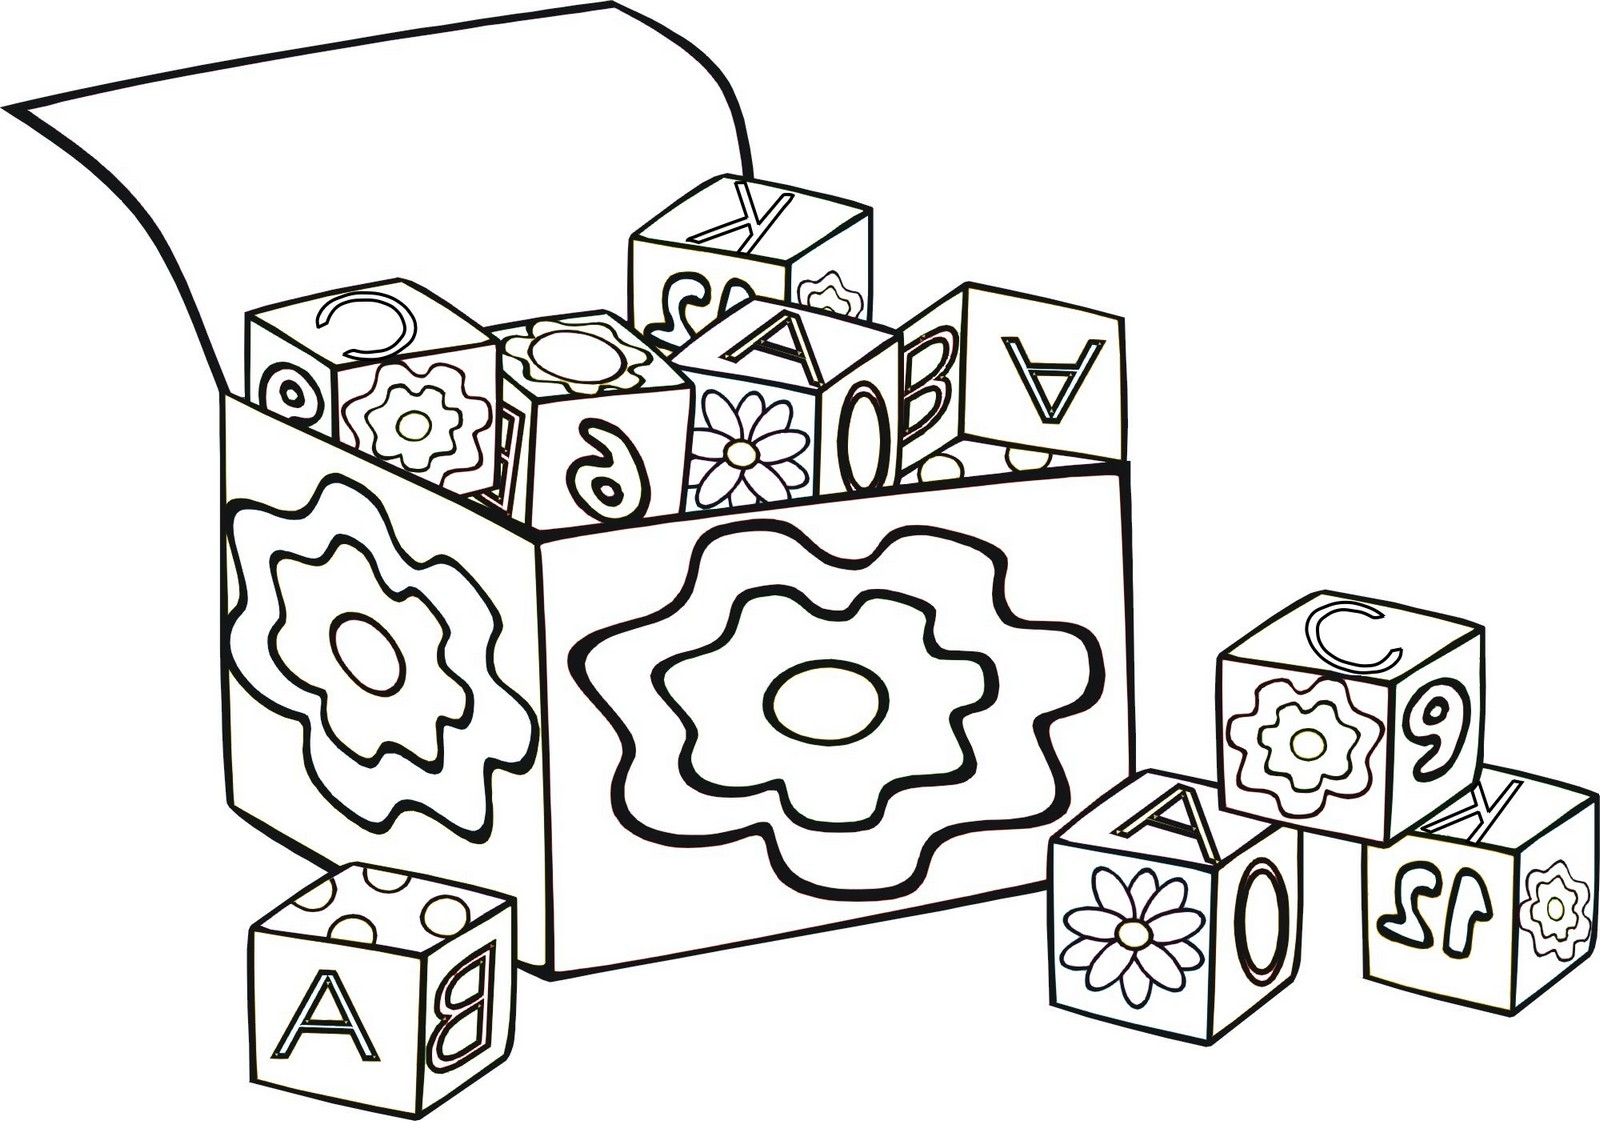 abc blocks toys in the box coloring page